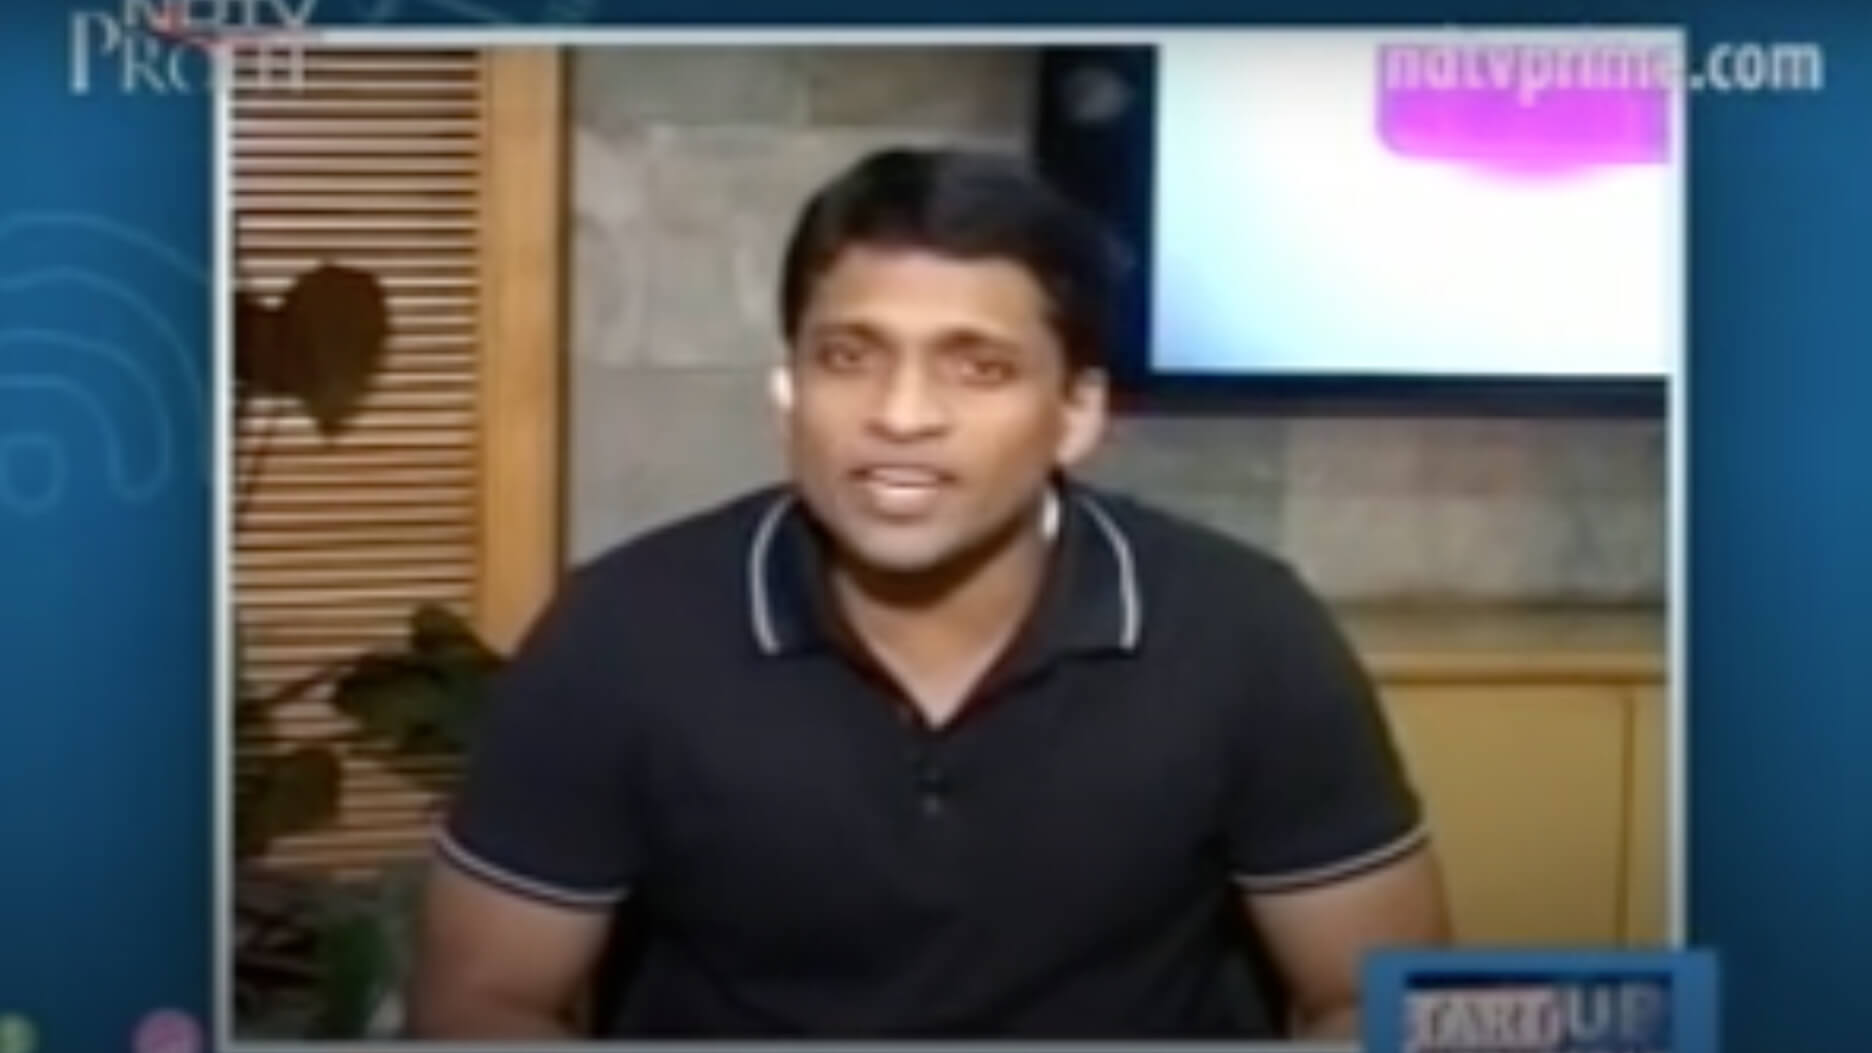 Byjus on NDTV